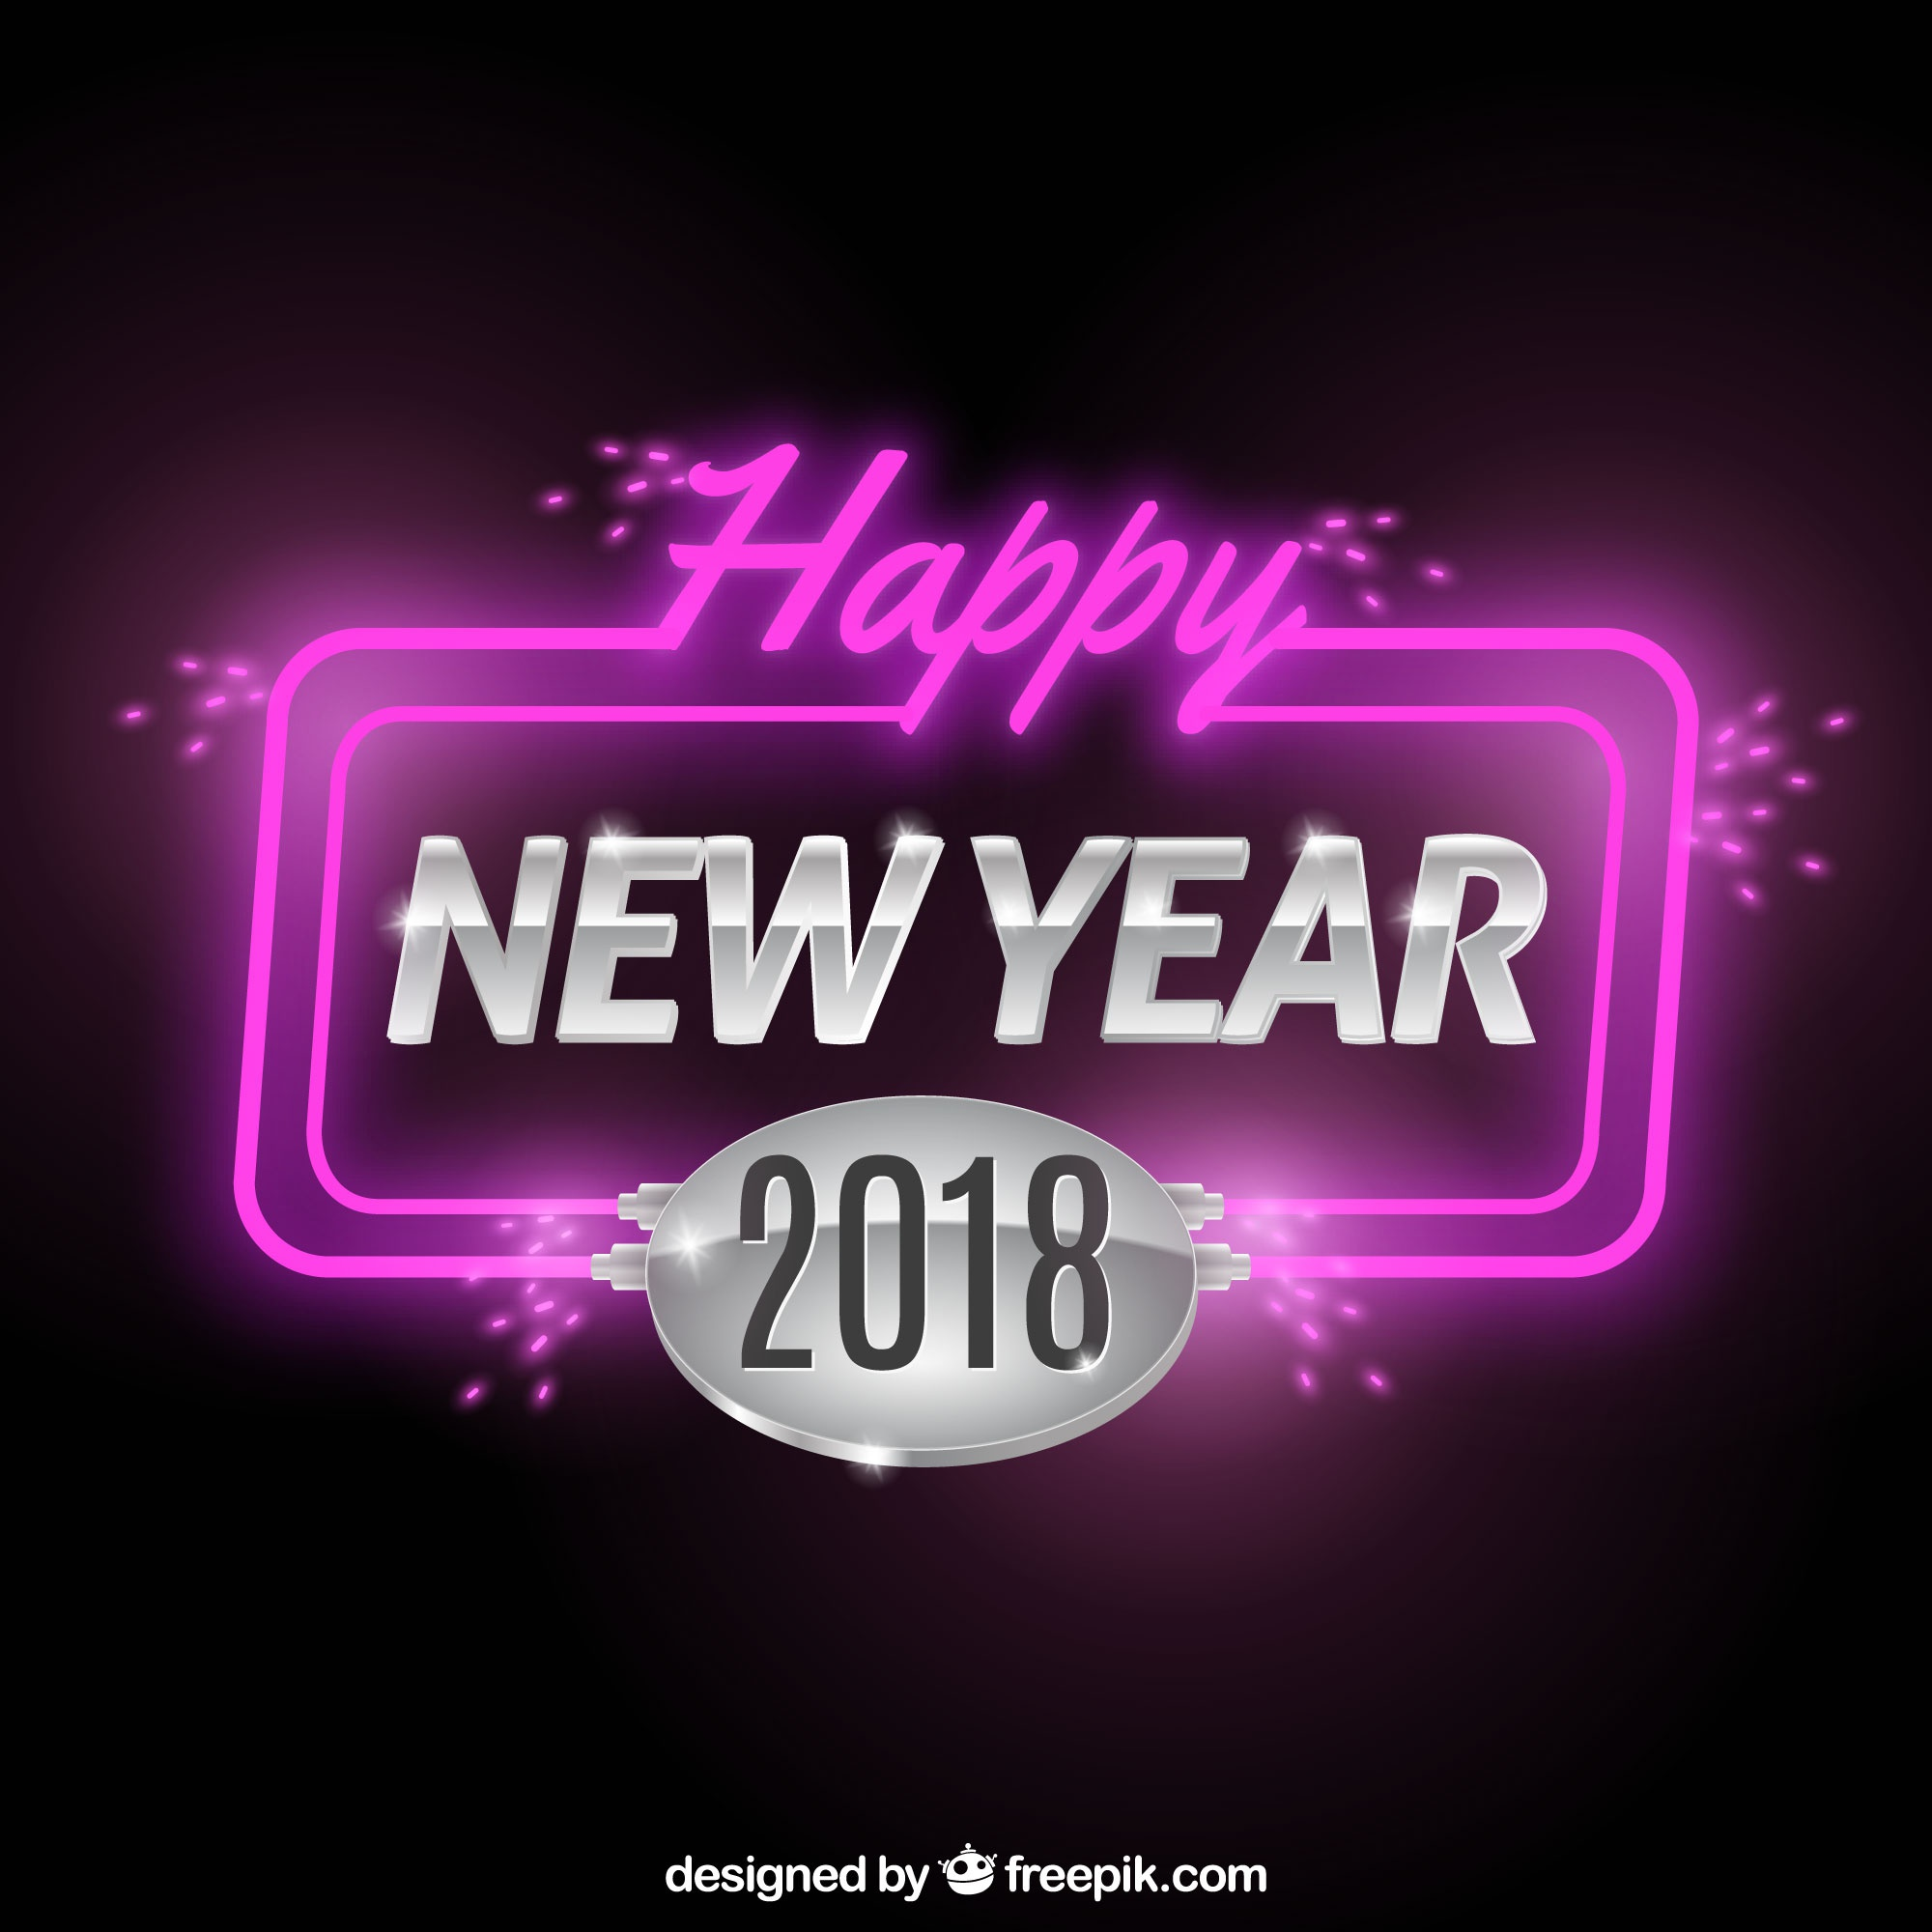 Happy new year background with neon lights